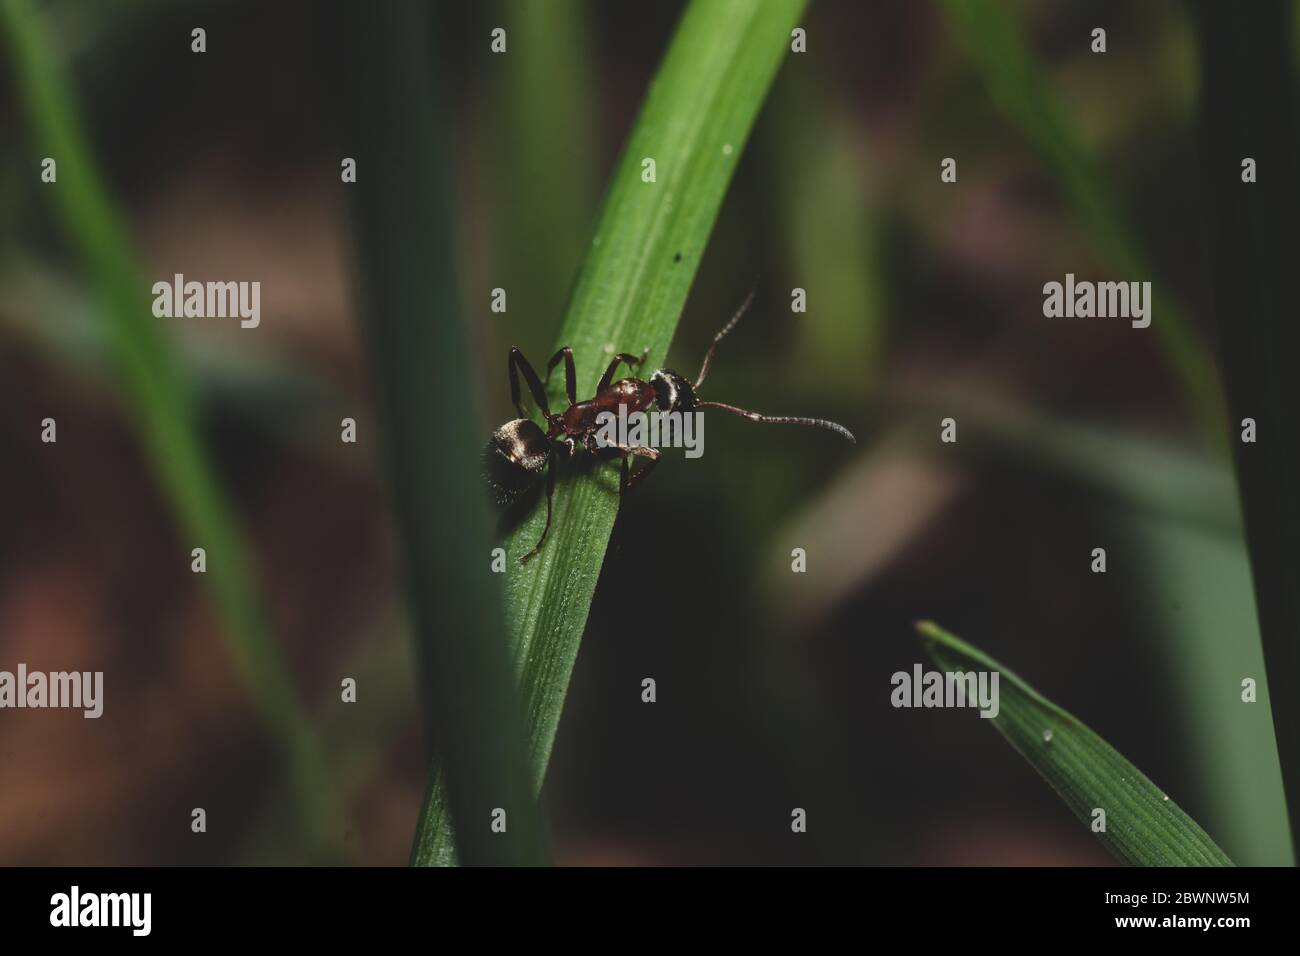 Close up view with ant that crawling on grass Stock Photo